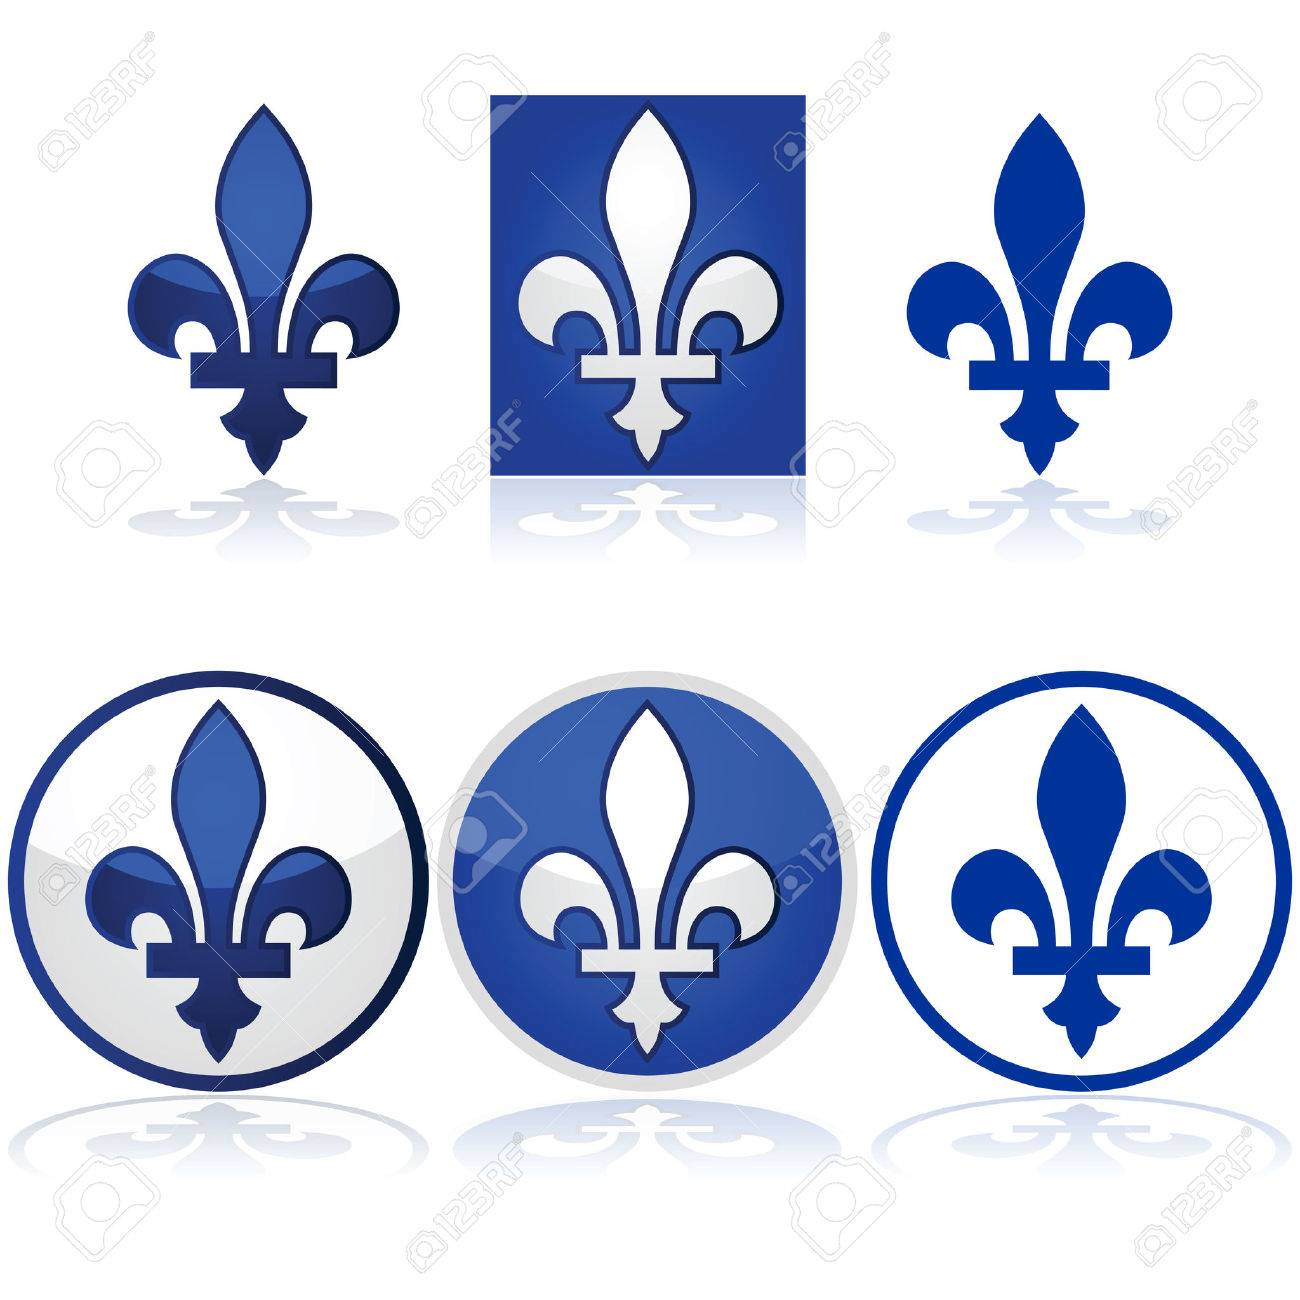 Glossy Illustration Showing The Quebec Fleur De Lys In Blue And